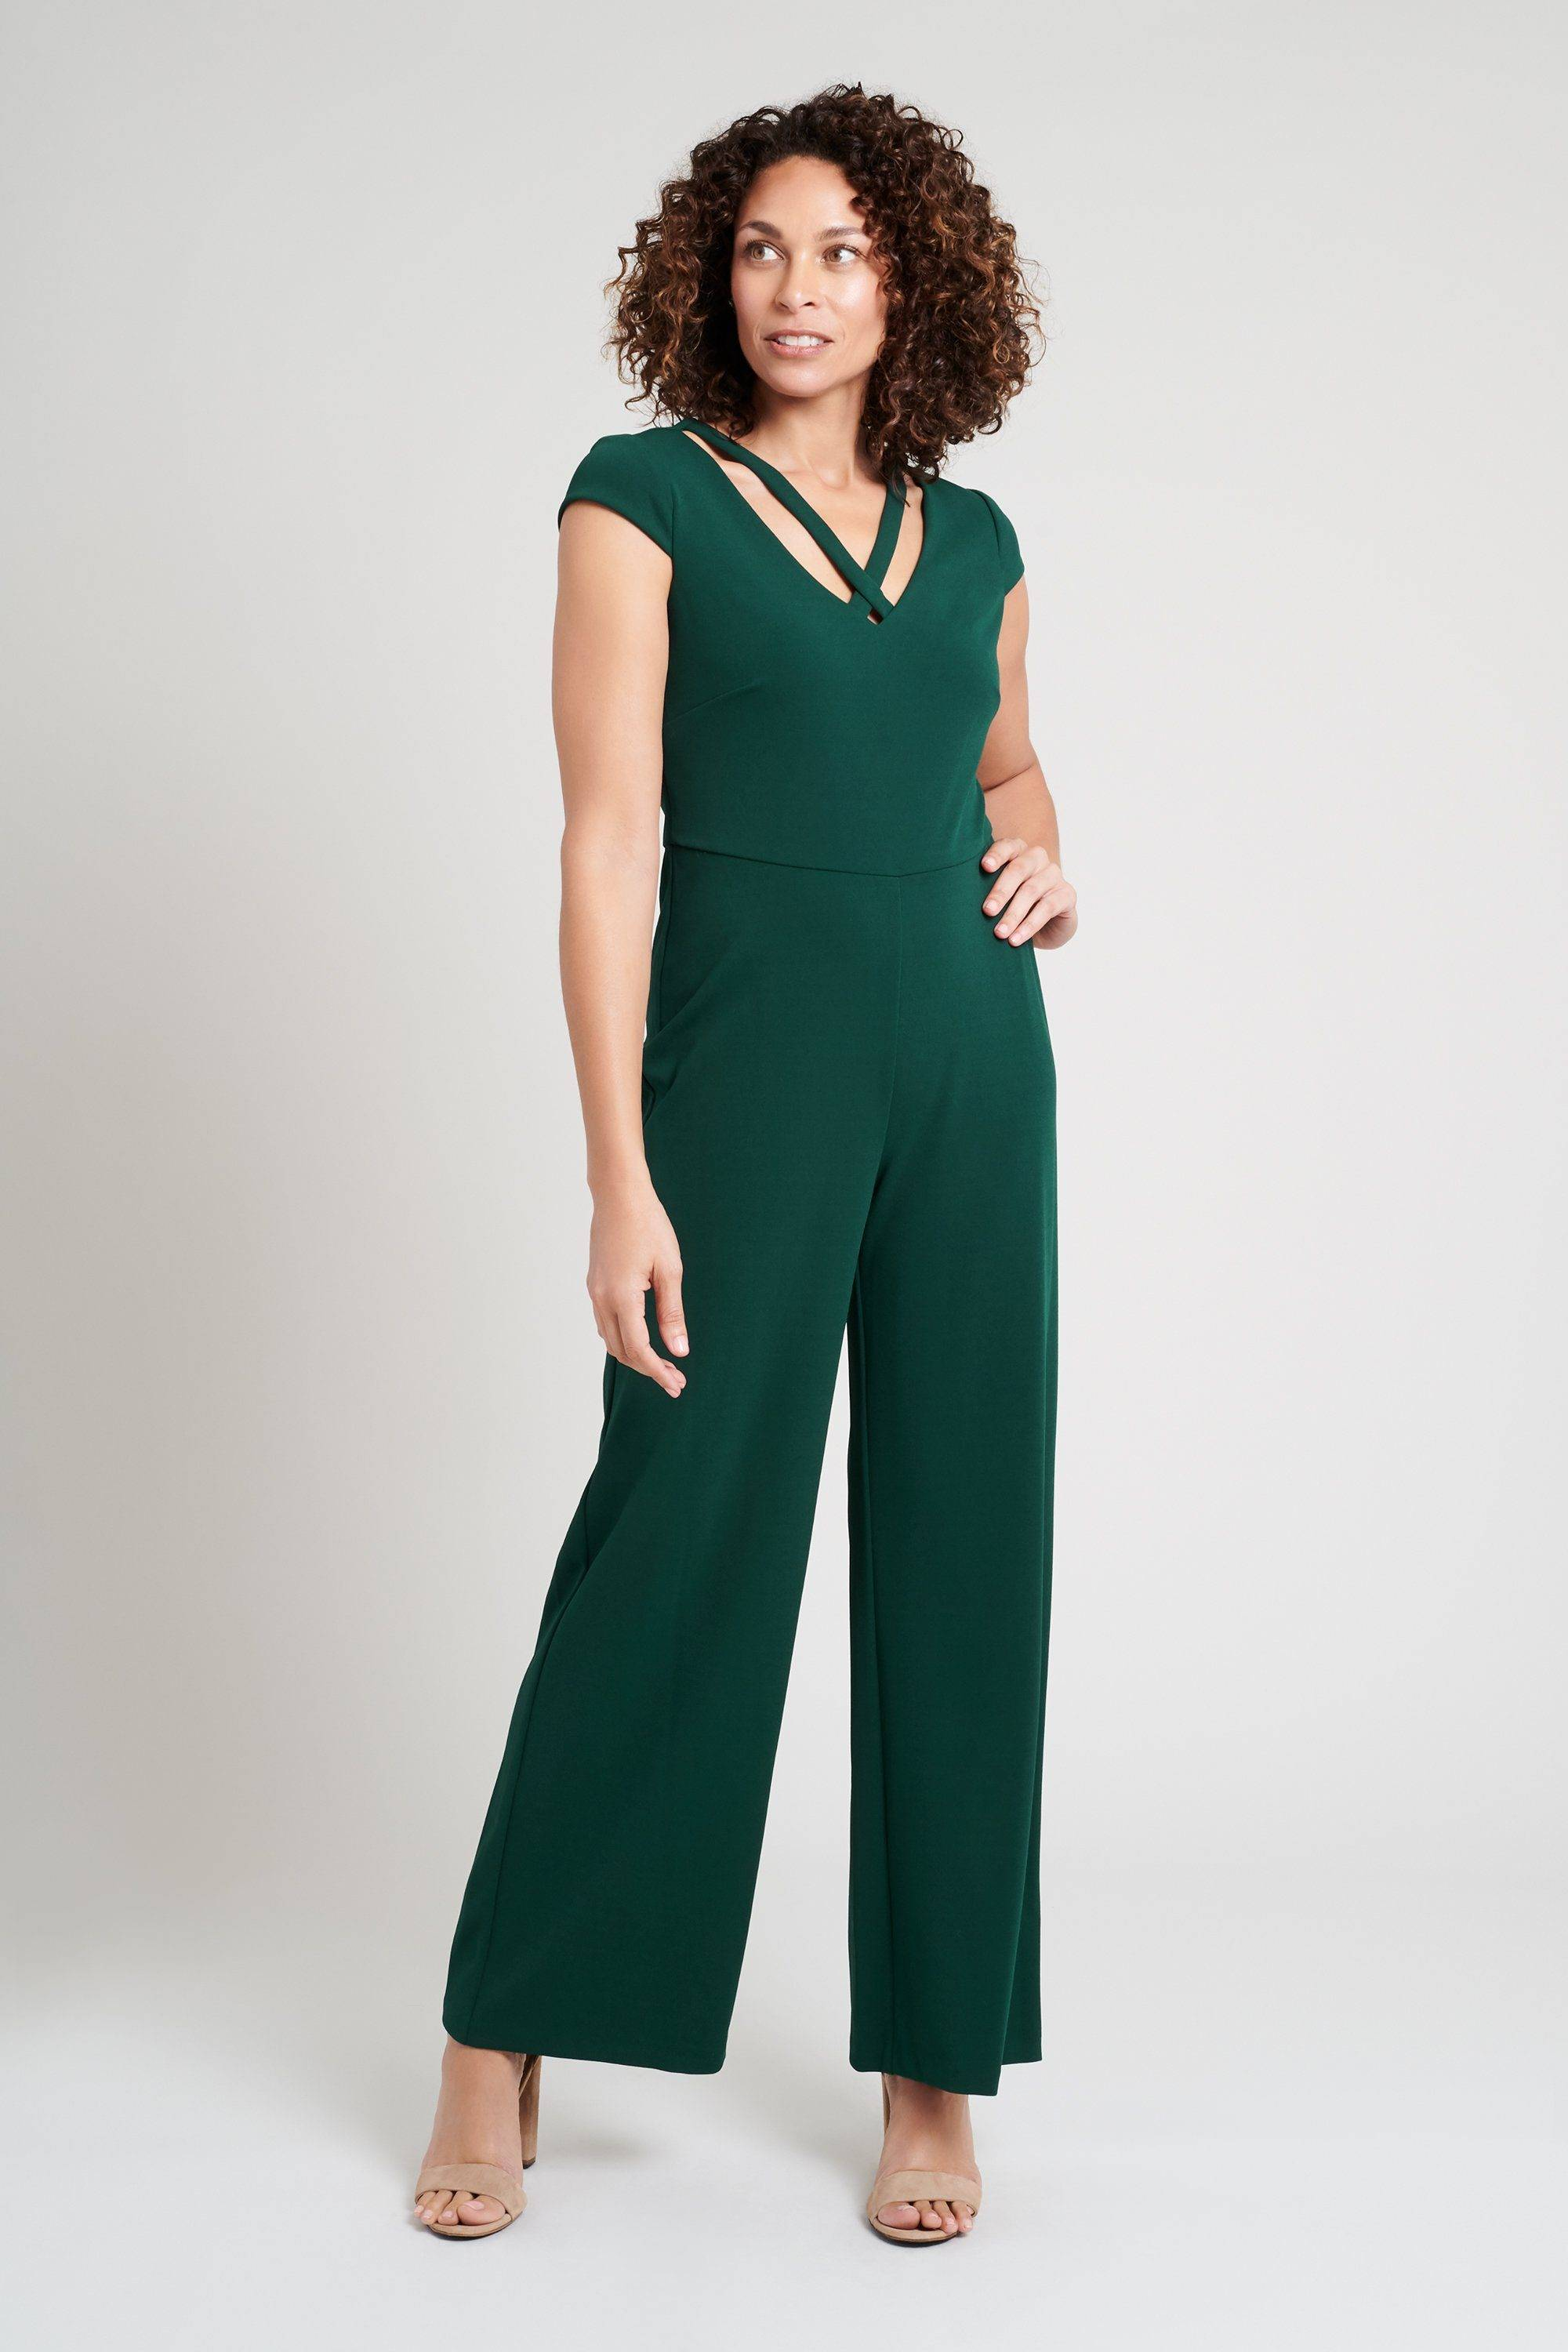 green-jumpsuit-womens-romper-forest-hunter-connected-apparel